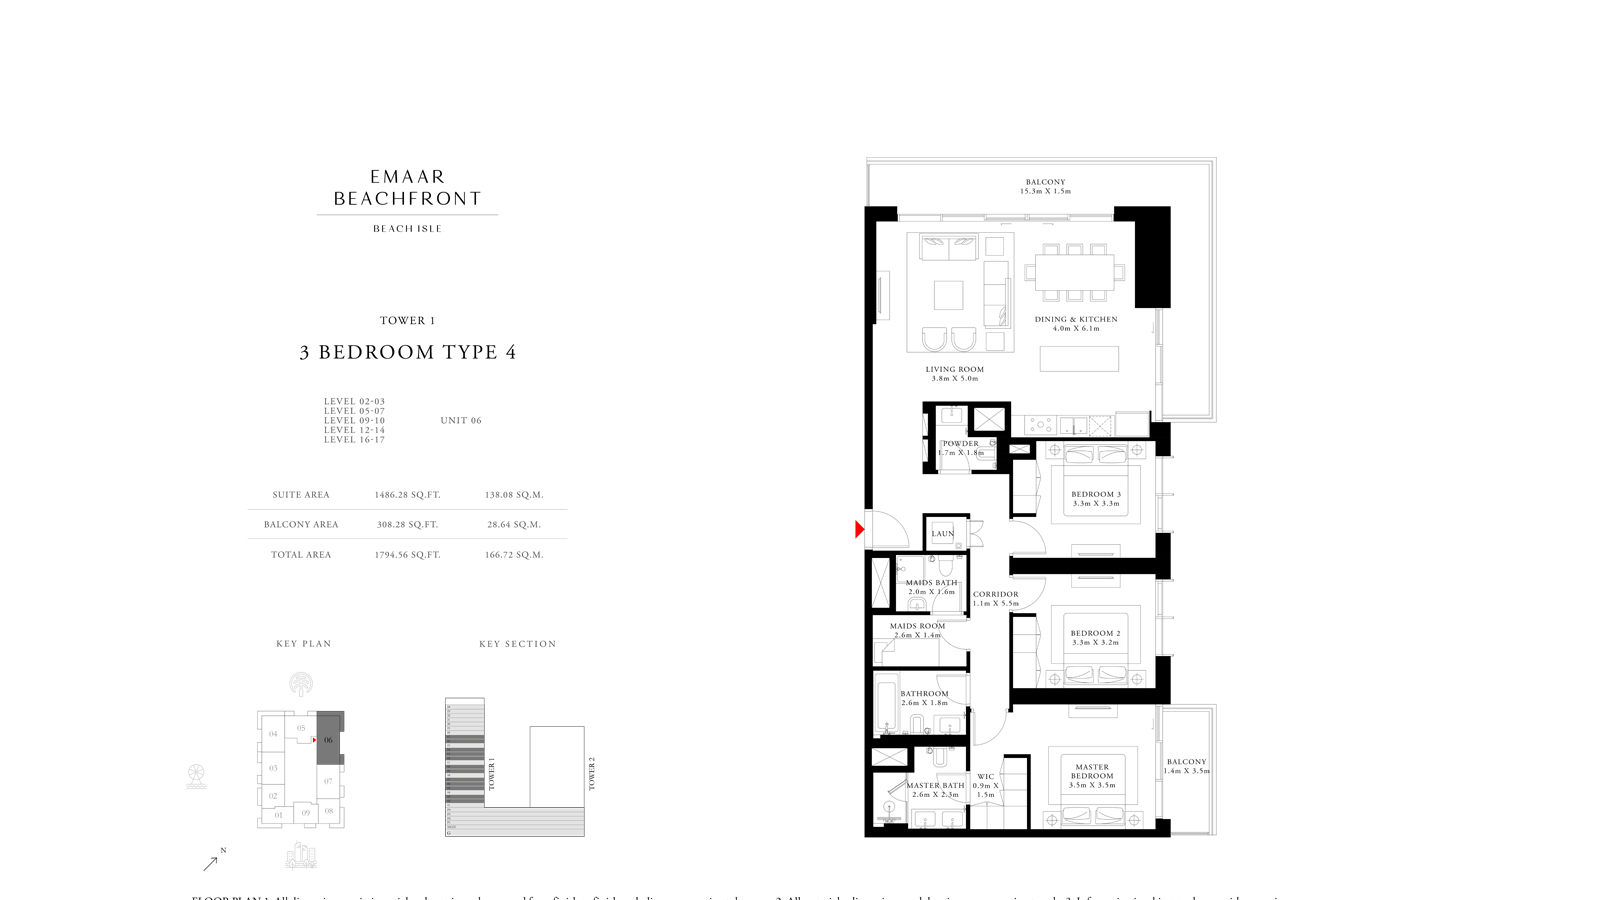 3 Bedroom Type 4 Tower 1, Size 1794    sq. ft.